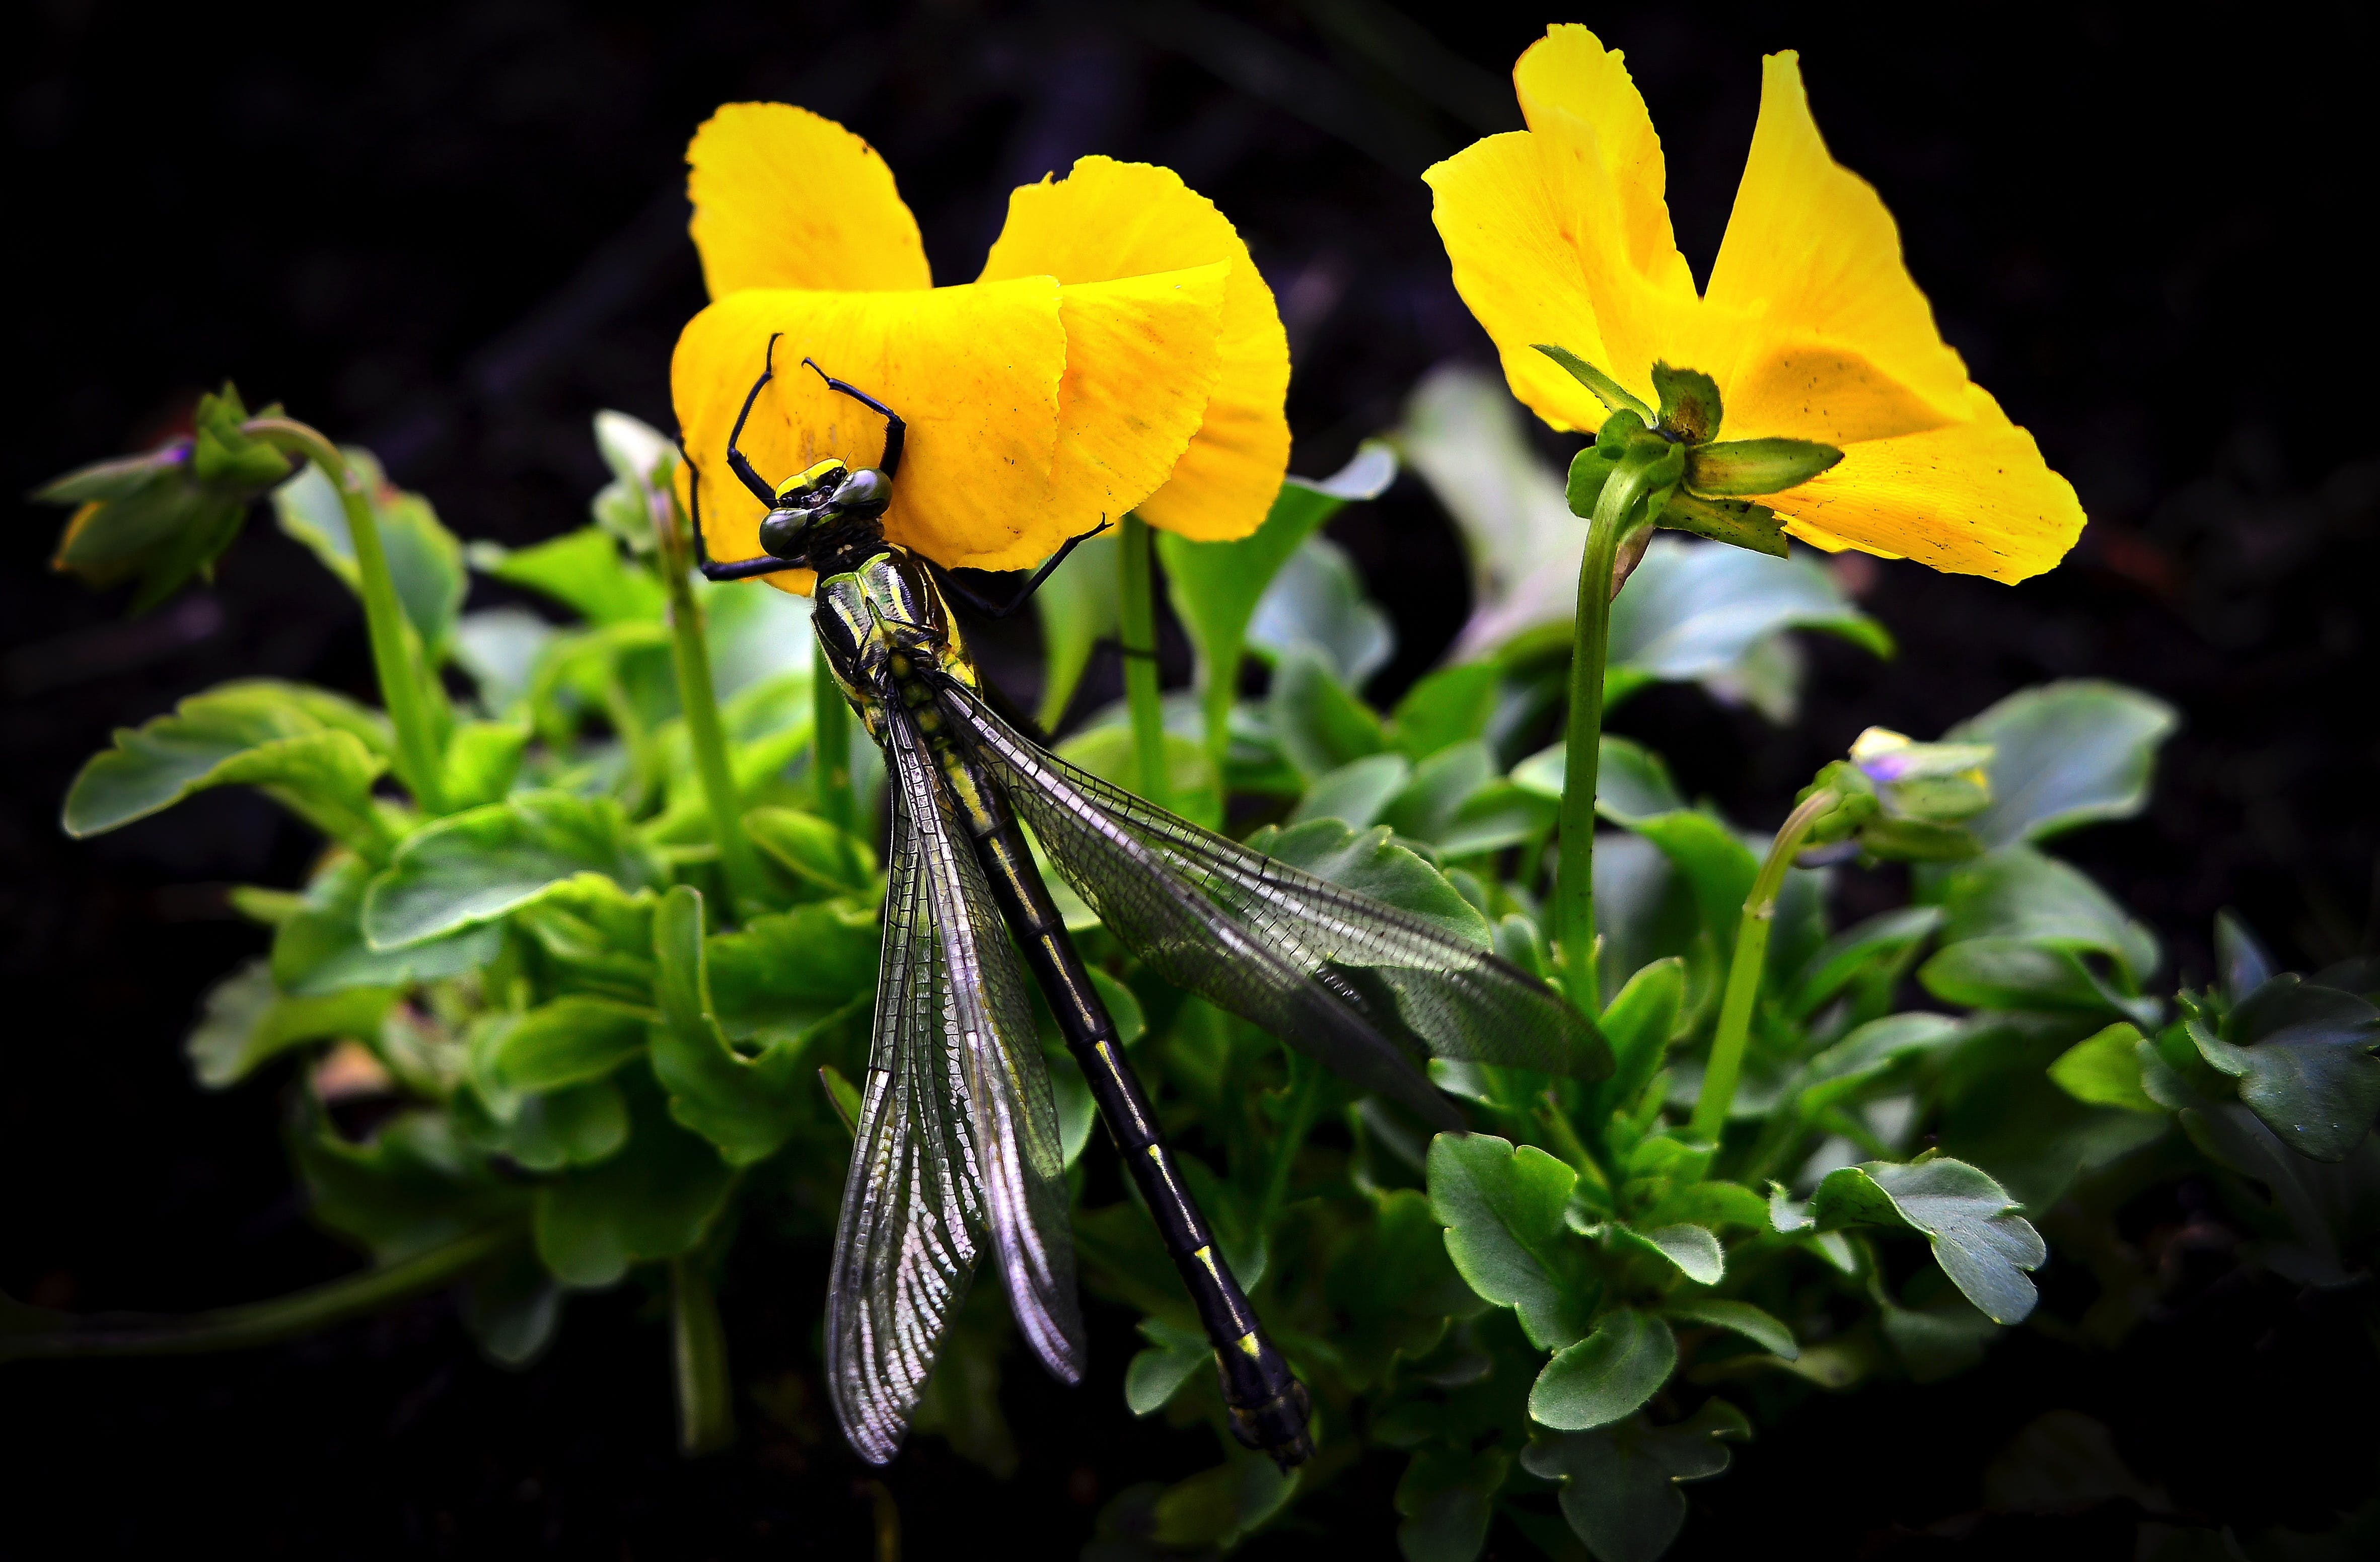 Dragonfly on Yellow Flowers